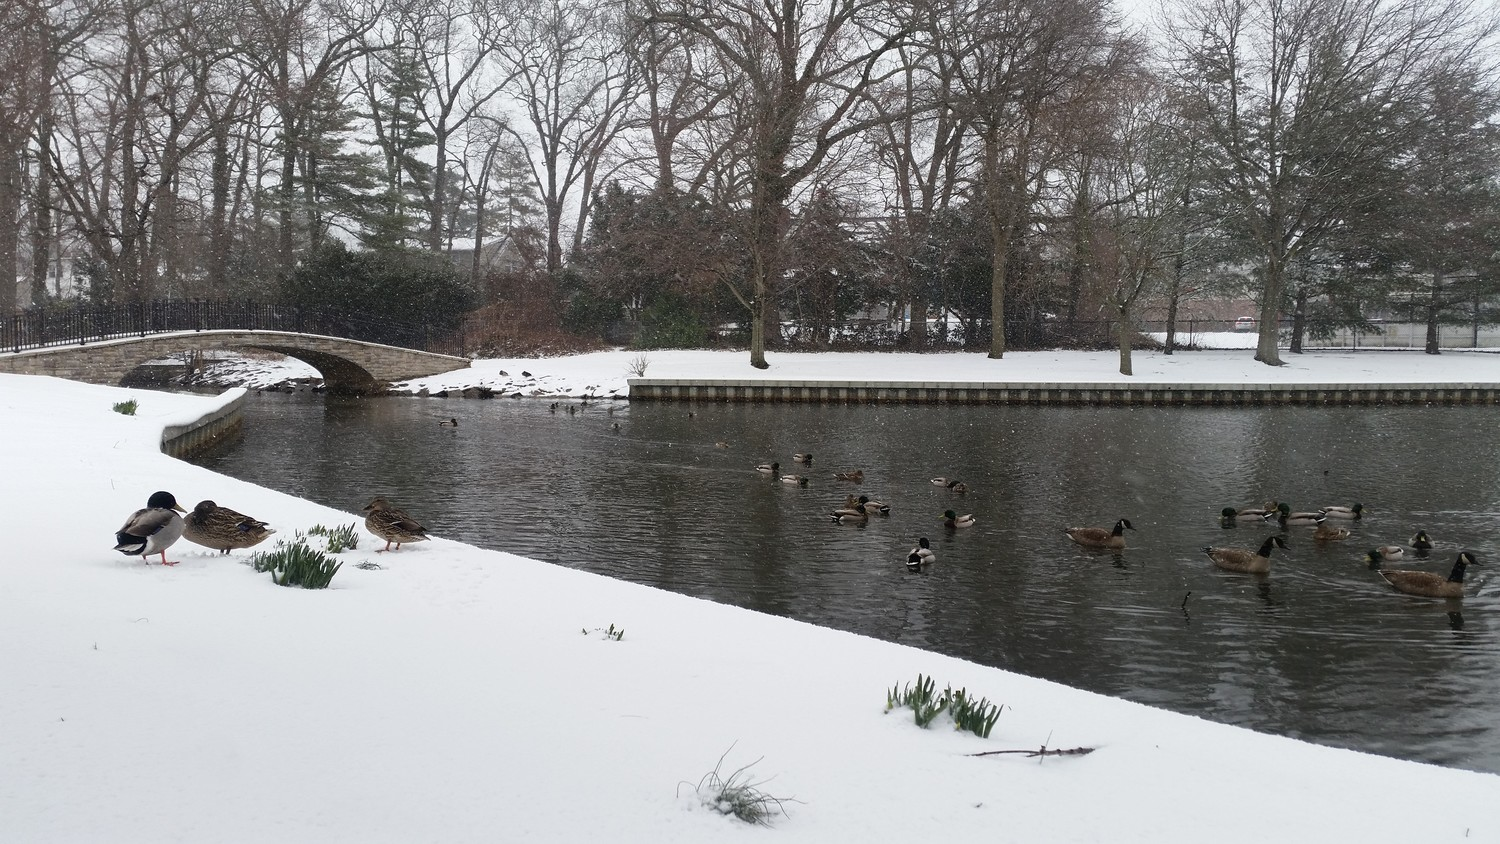 Ducks at Halls Pond Park in West Hempstead braving the inclement weather.